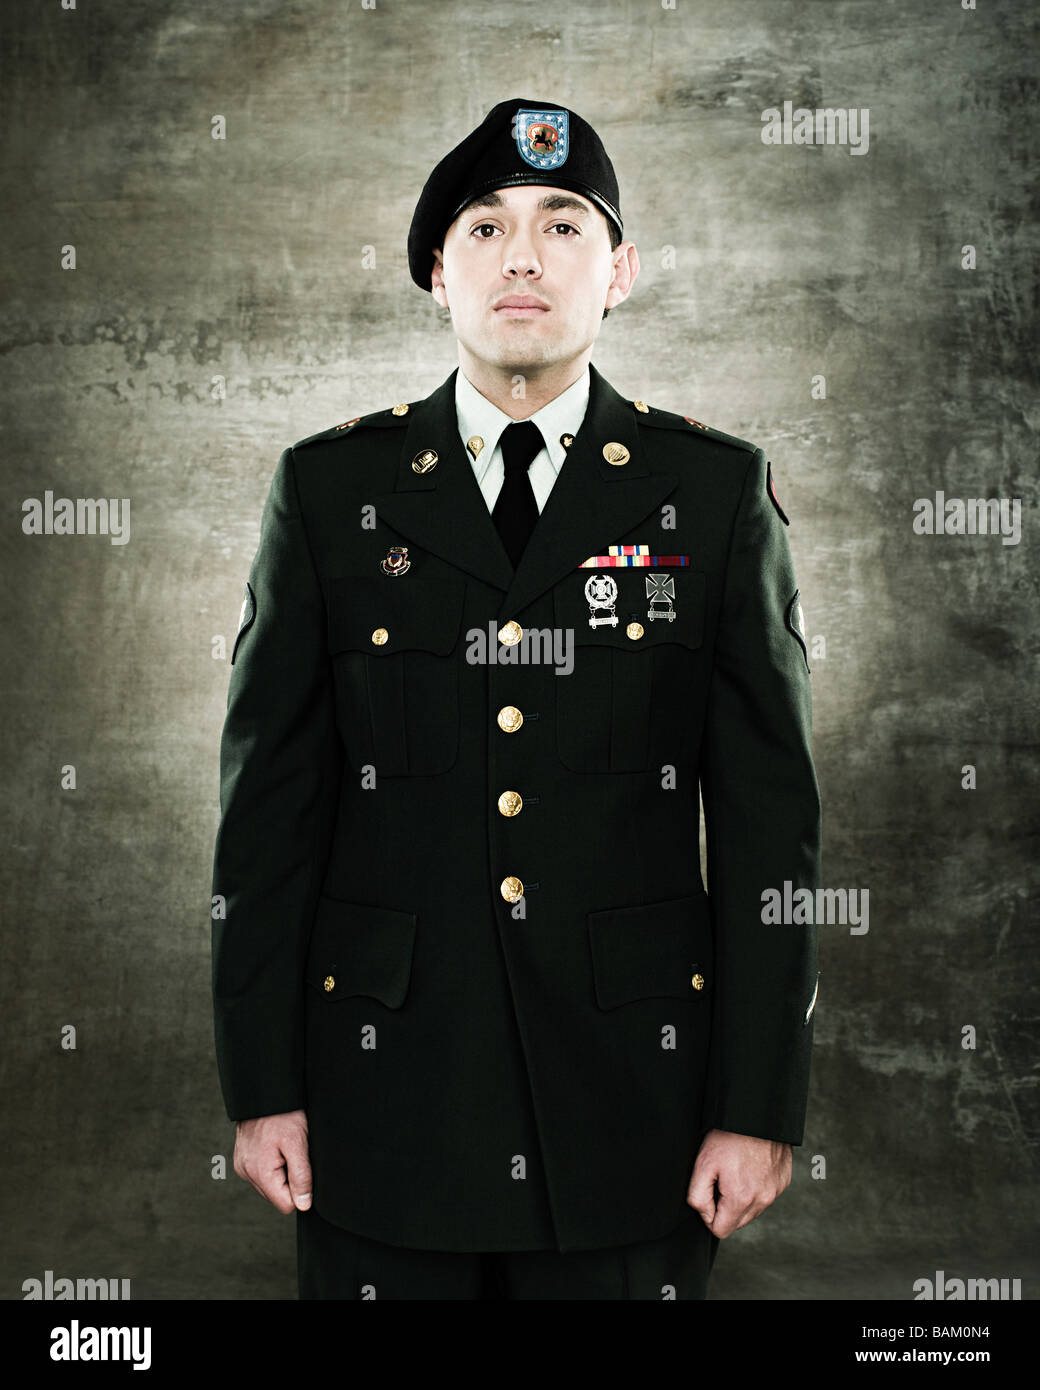 Portrait of soldier - Stock Image